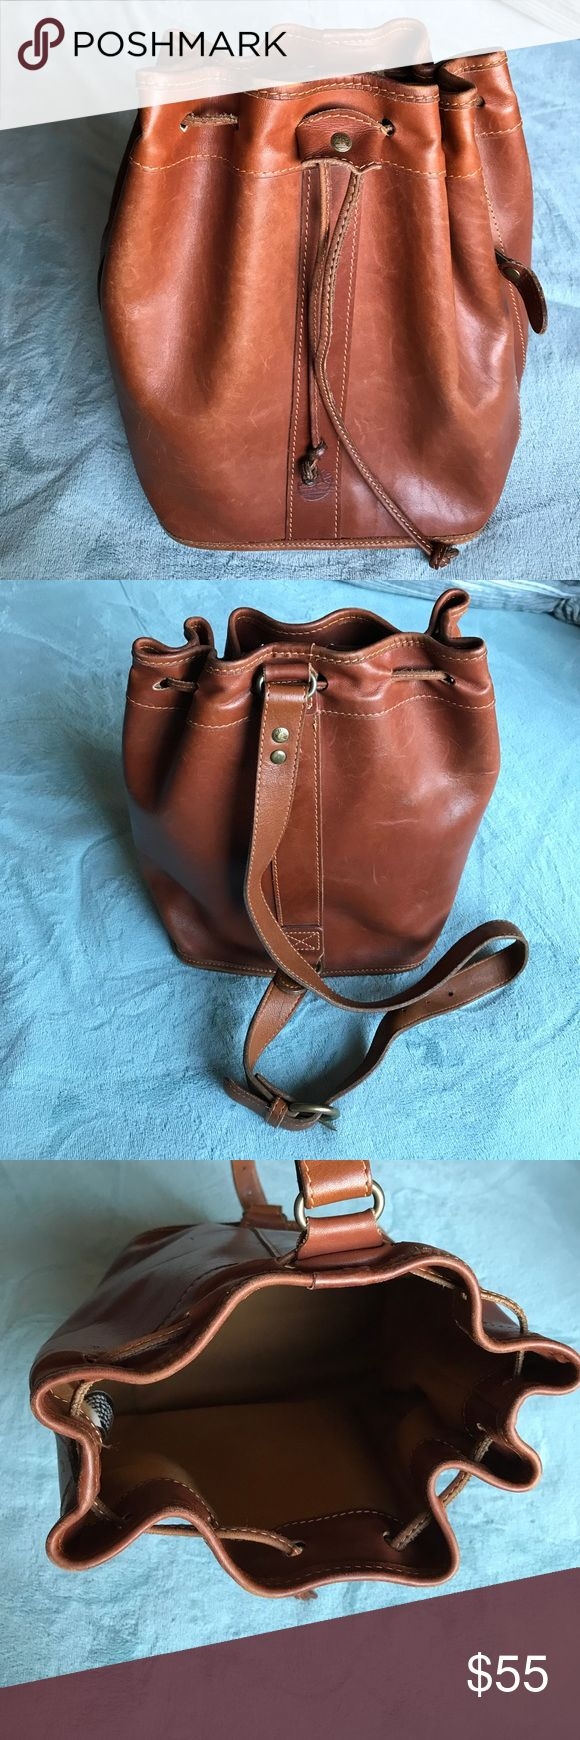 Timberland Bucket Bag Vintage Timberland Bucket Bag. Sling back. It could be a crossbody, but it slings across your back, not on your side. Wonderful brown leather. Made in the USA. Inside zip pocket. Outside size zip pocket (perfect for your cellphone). Timberland Bags Backpacks